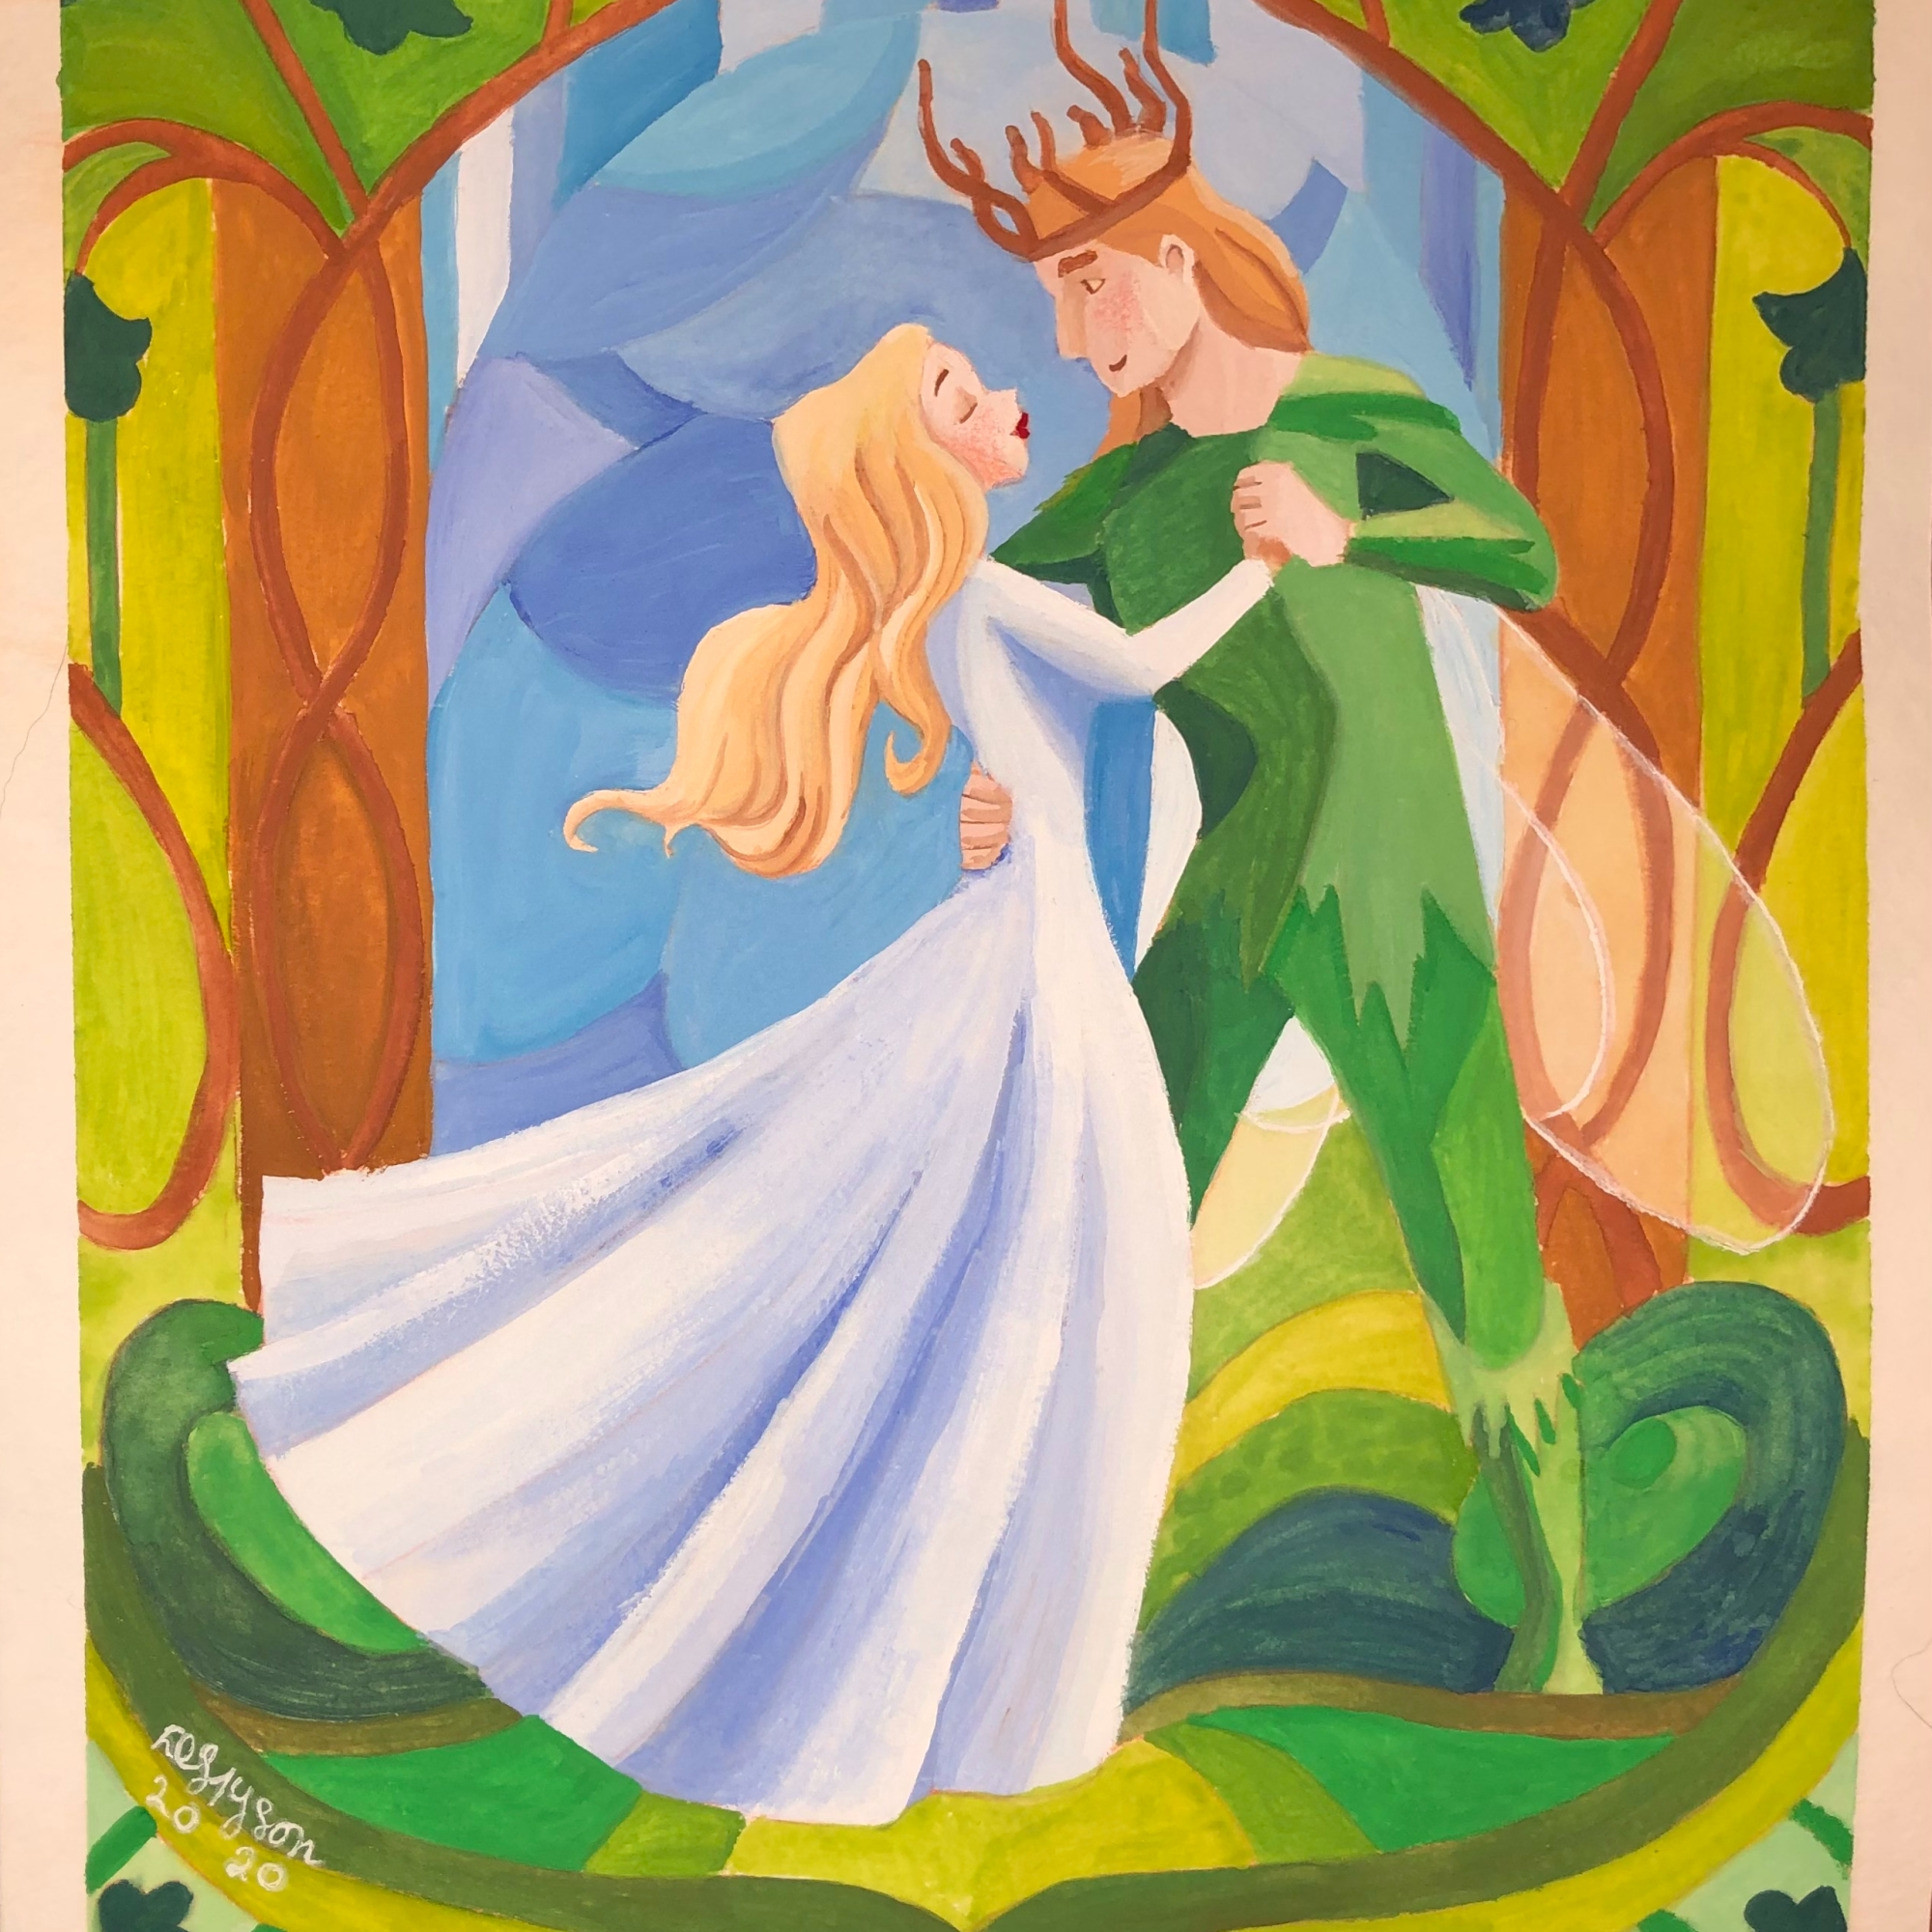 The Courtship of the Fairy King